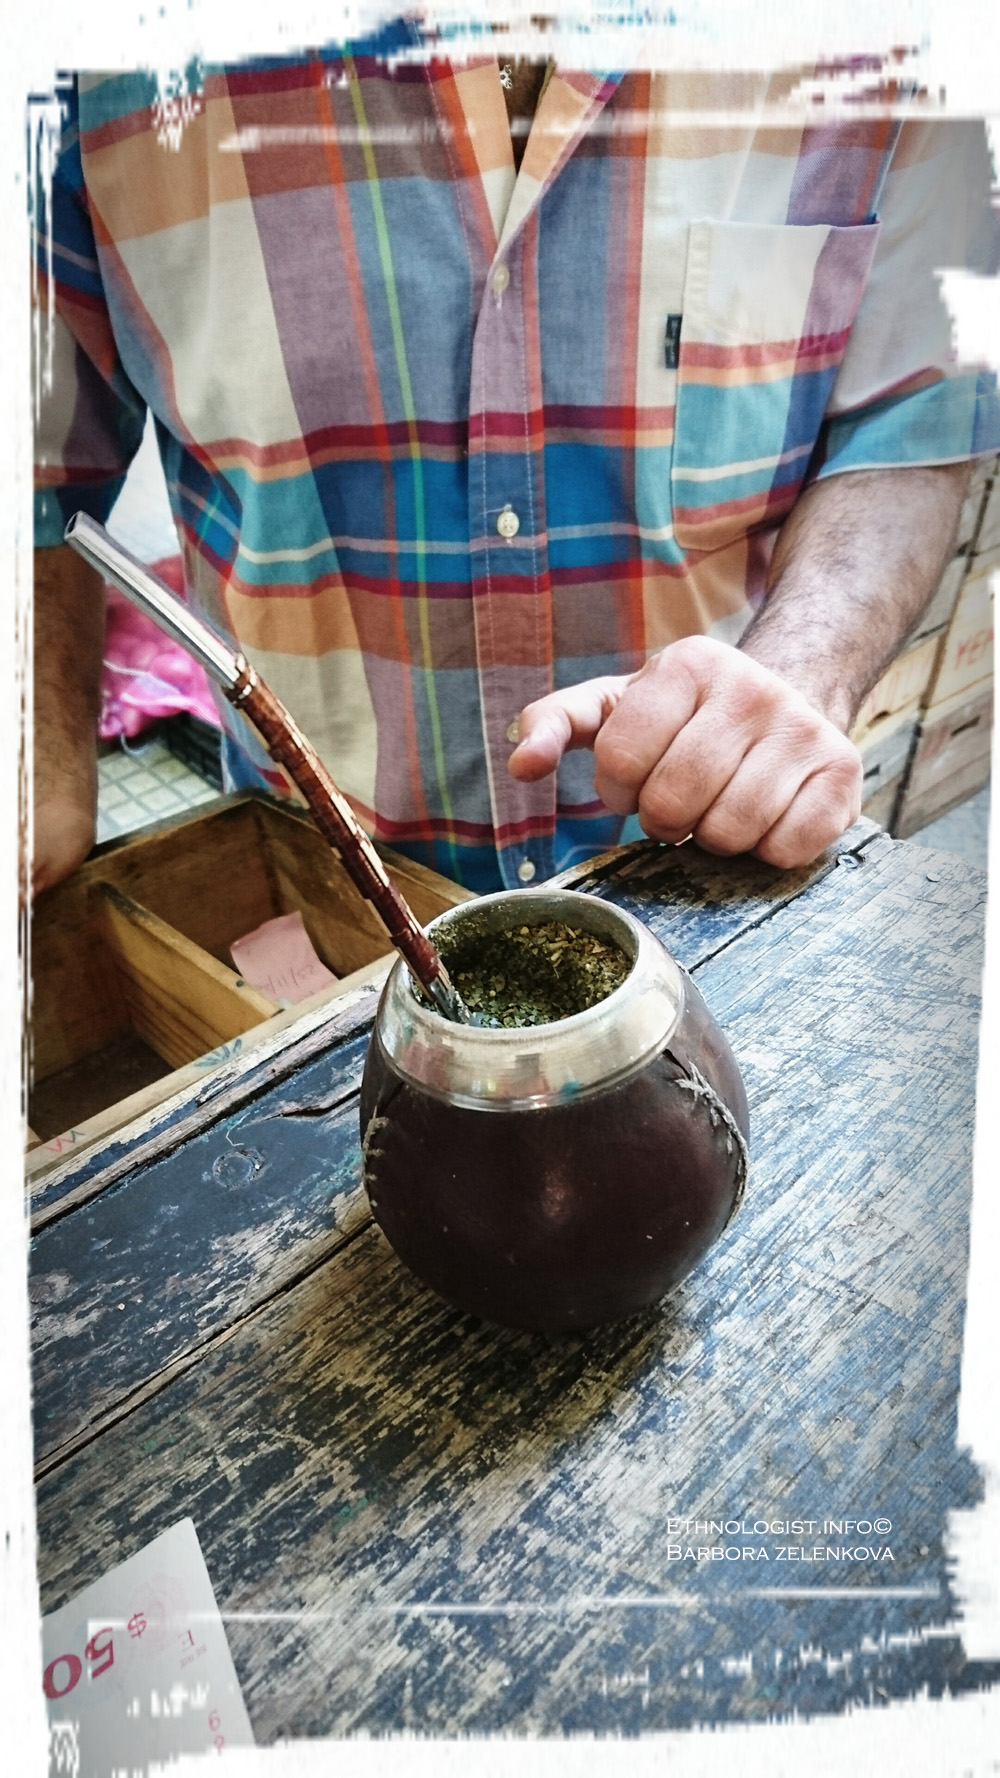 Yerba Mate gourd with the bombilla (yerba mate straw). Photo: Barbora Zelenková, Montevideo, December, 2016.